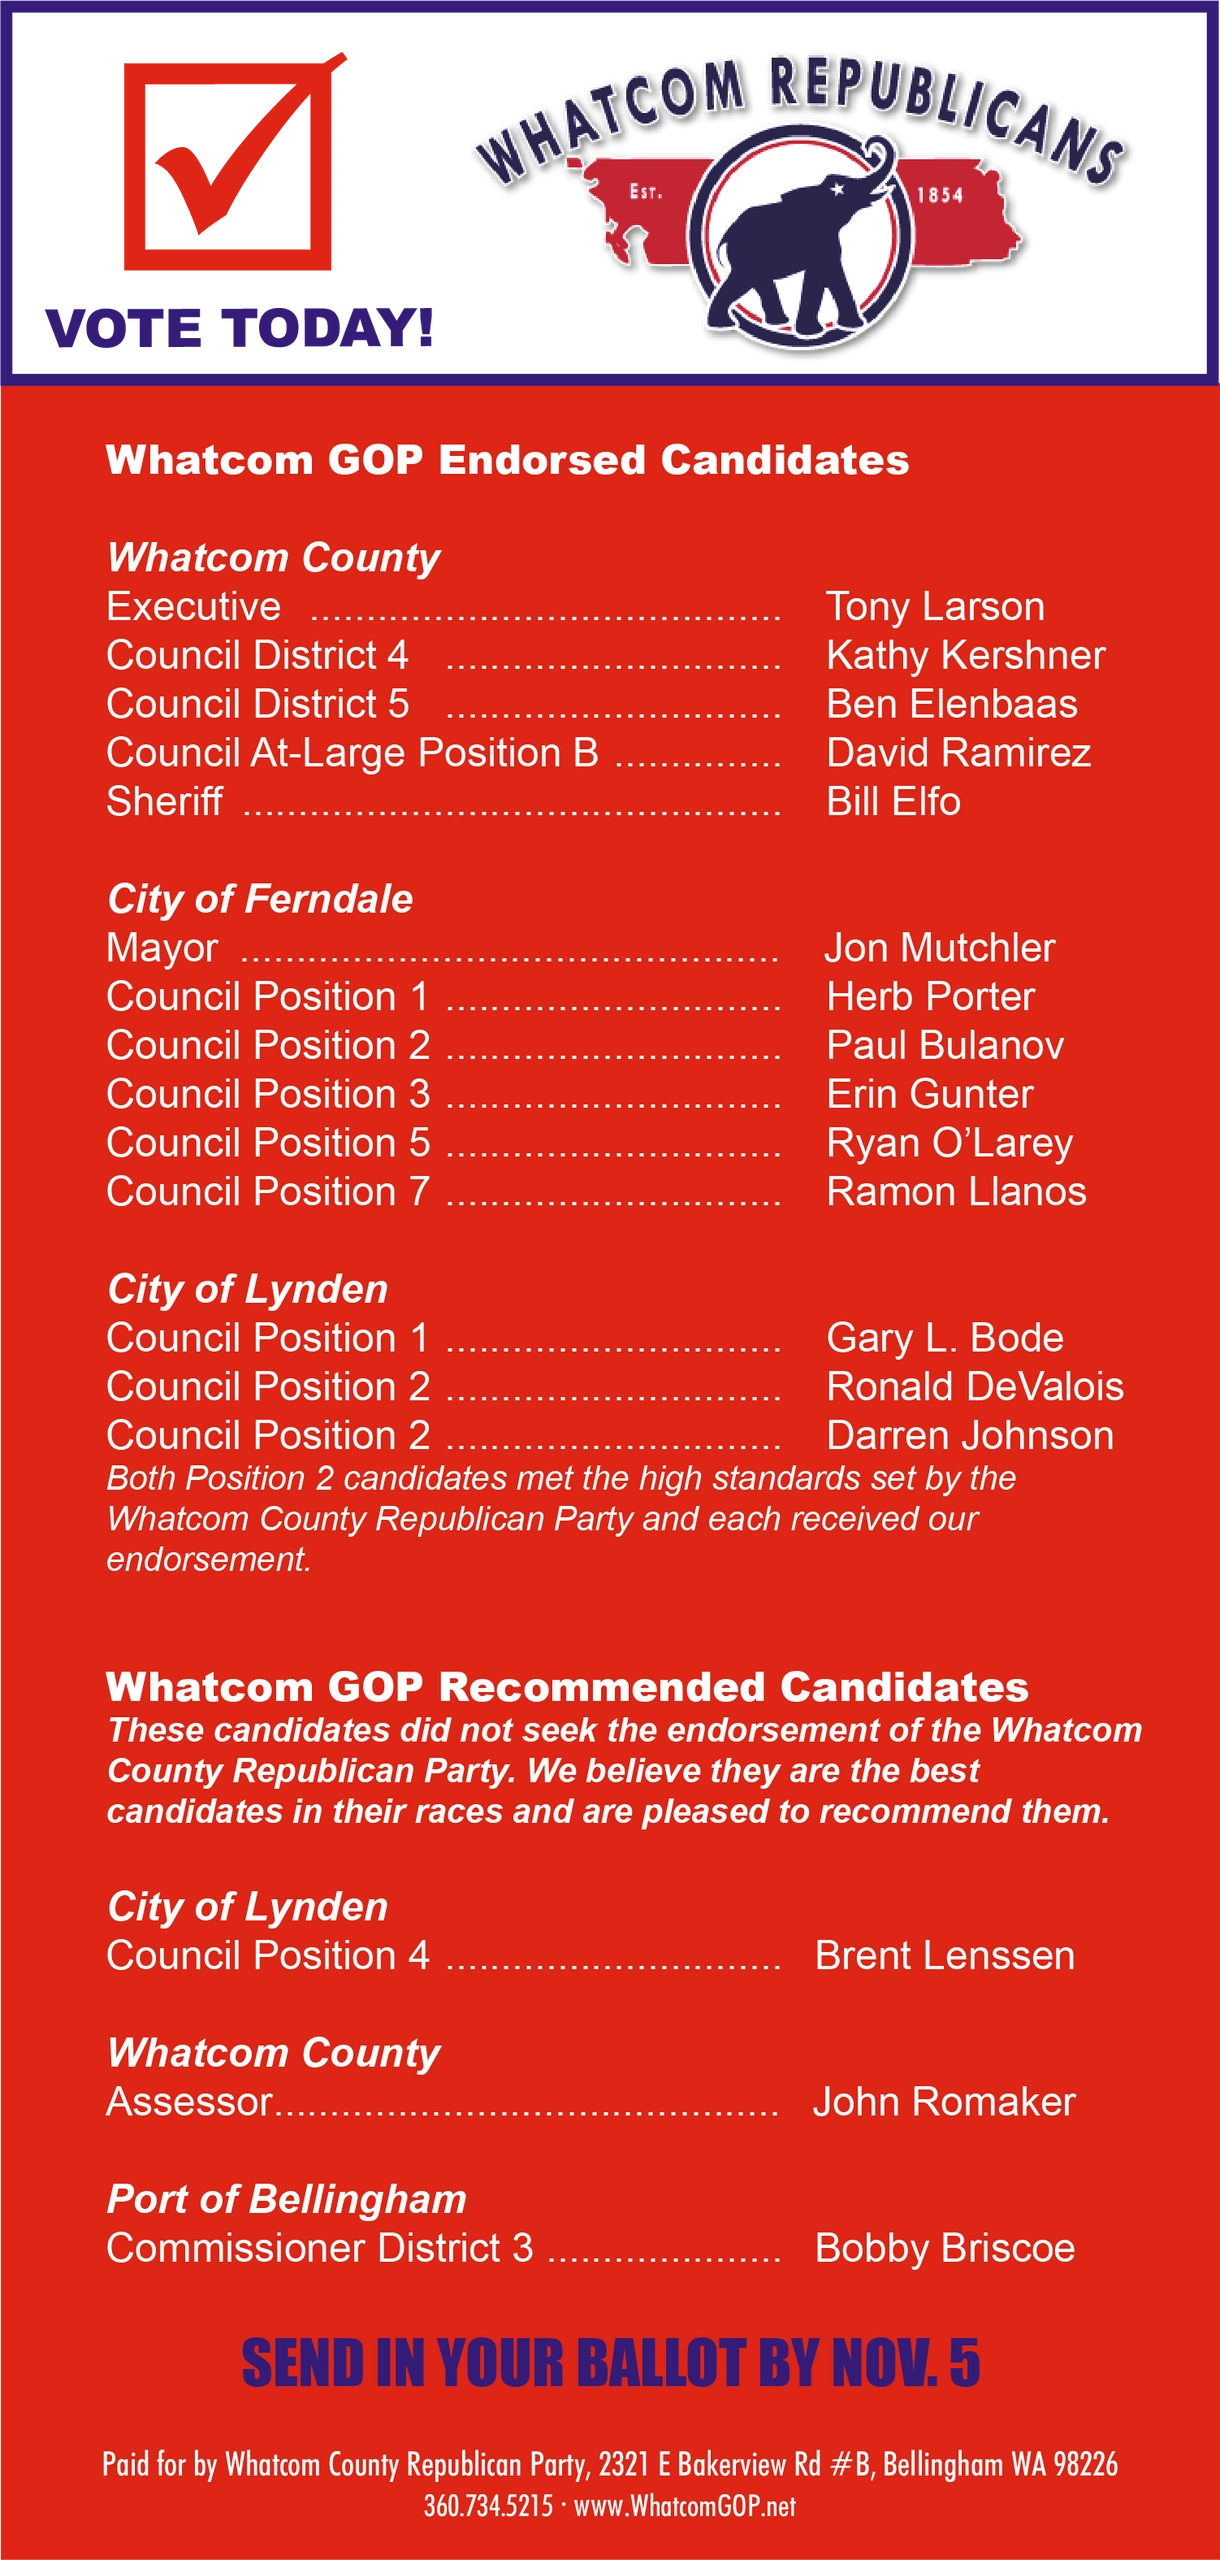 Whatcom County 2019 Endorsed Candidates Slate Card